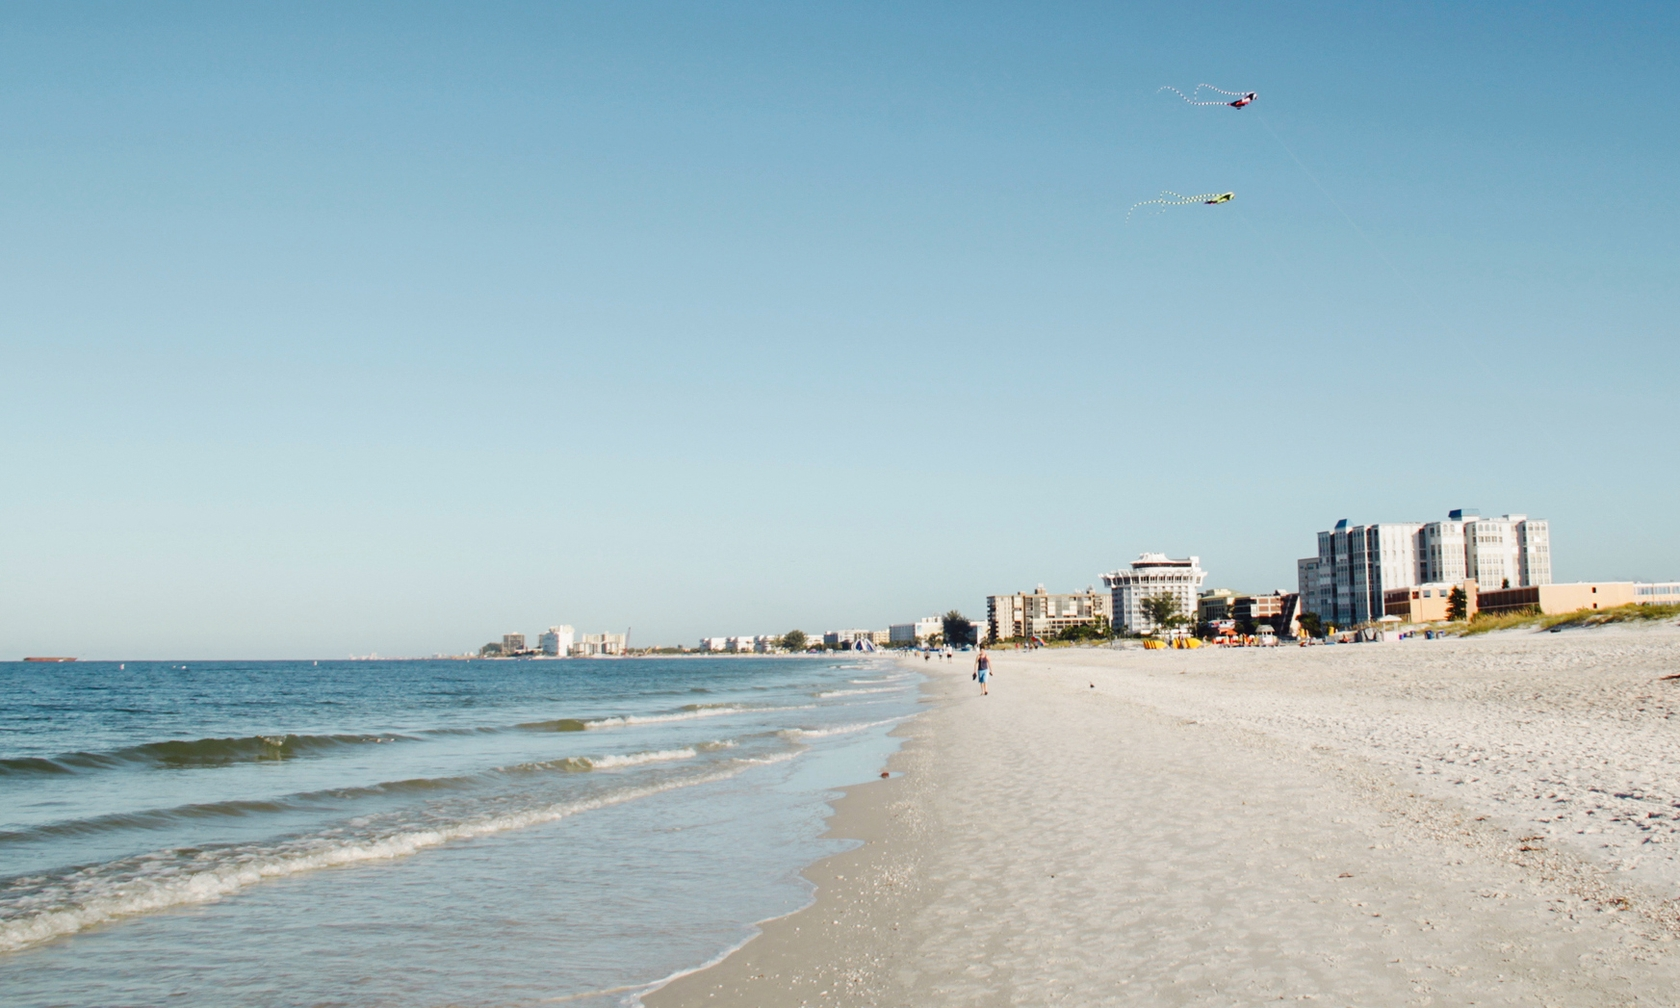 Vacation rentals in St. Pete Beach